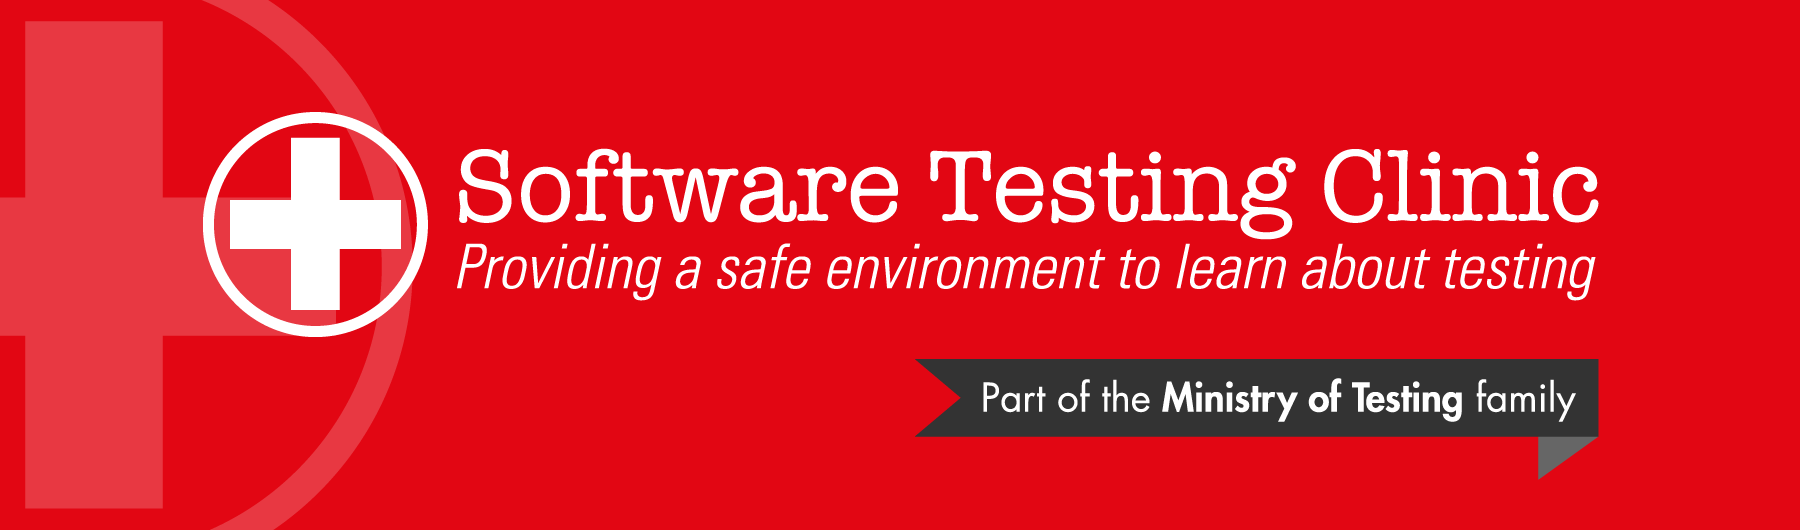 Software Testing Clinic Glasgow